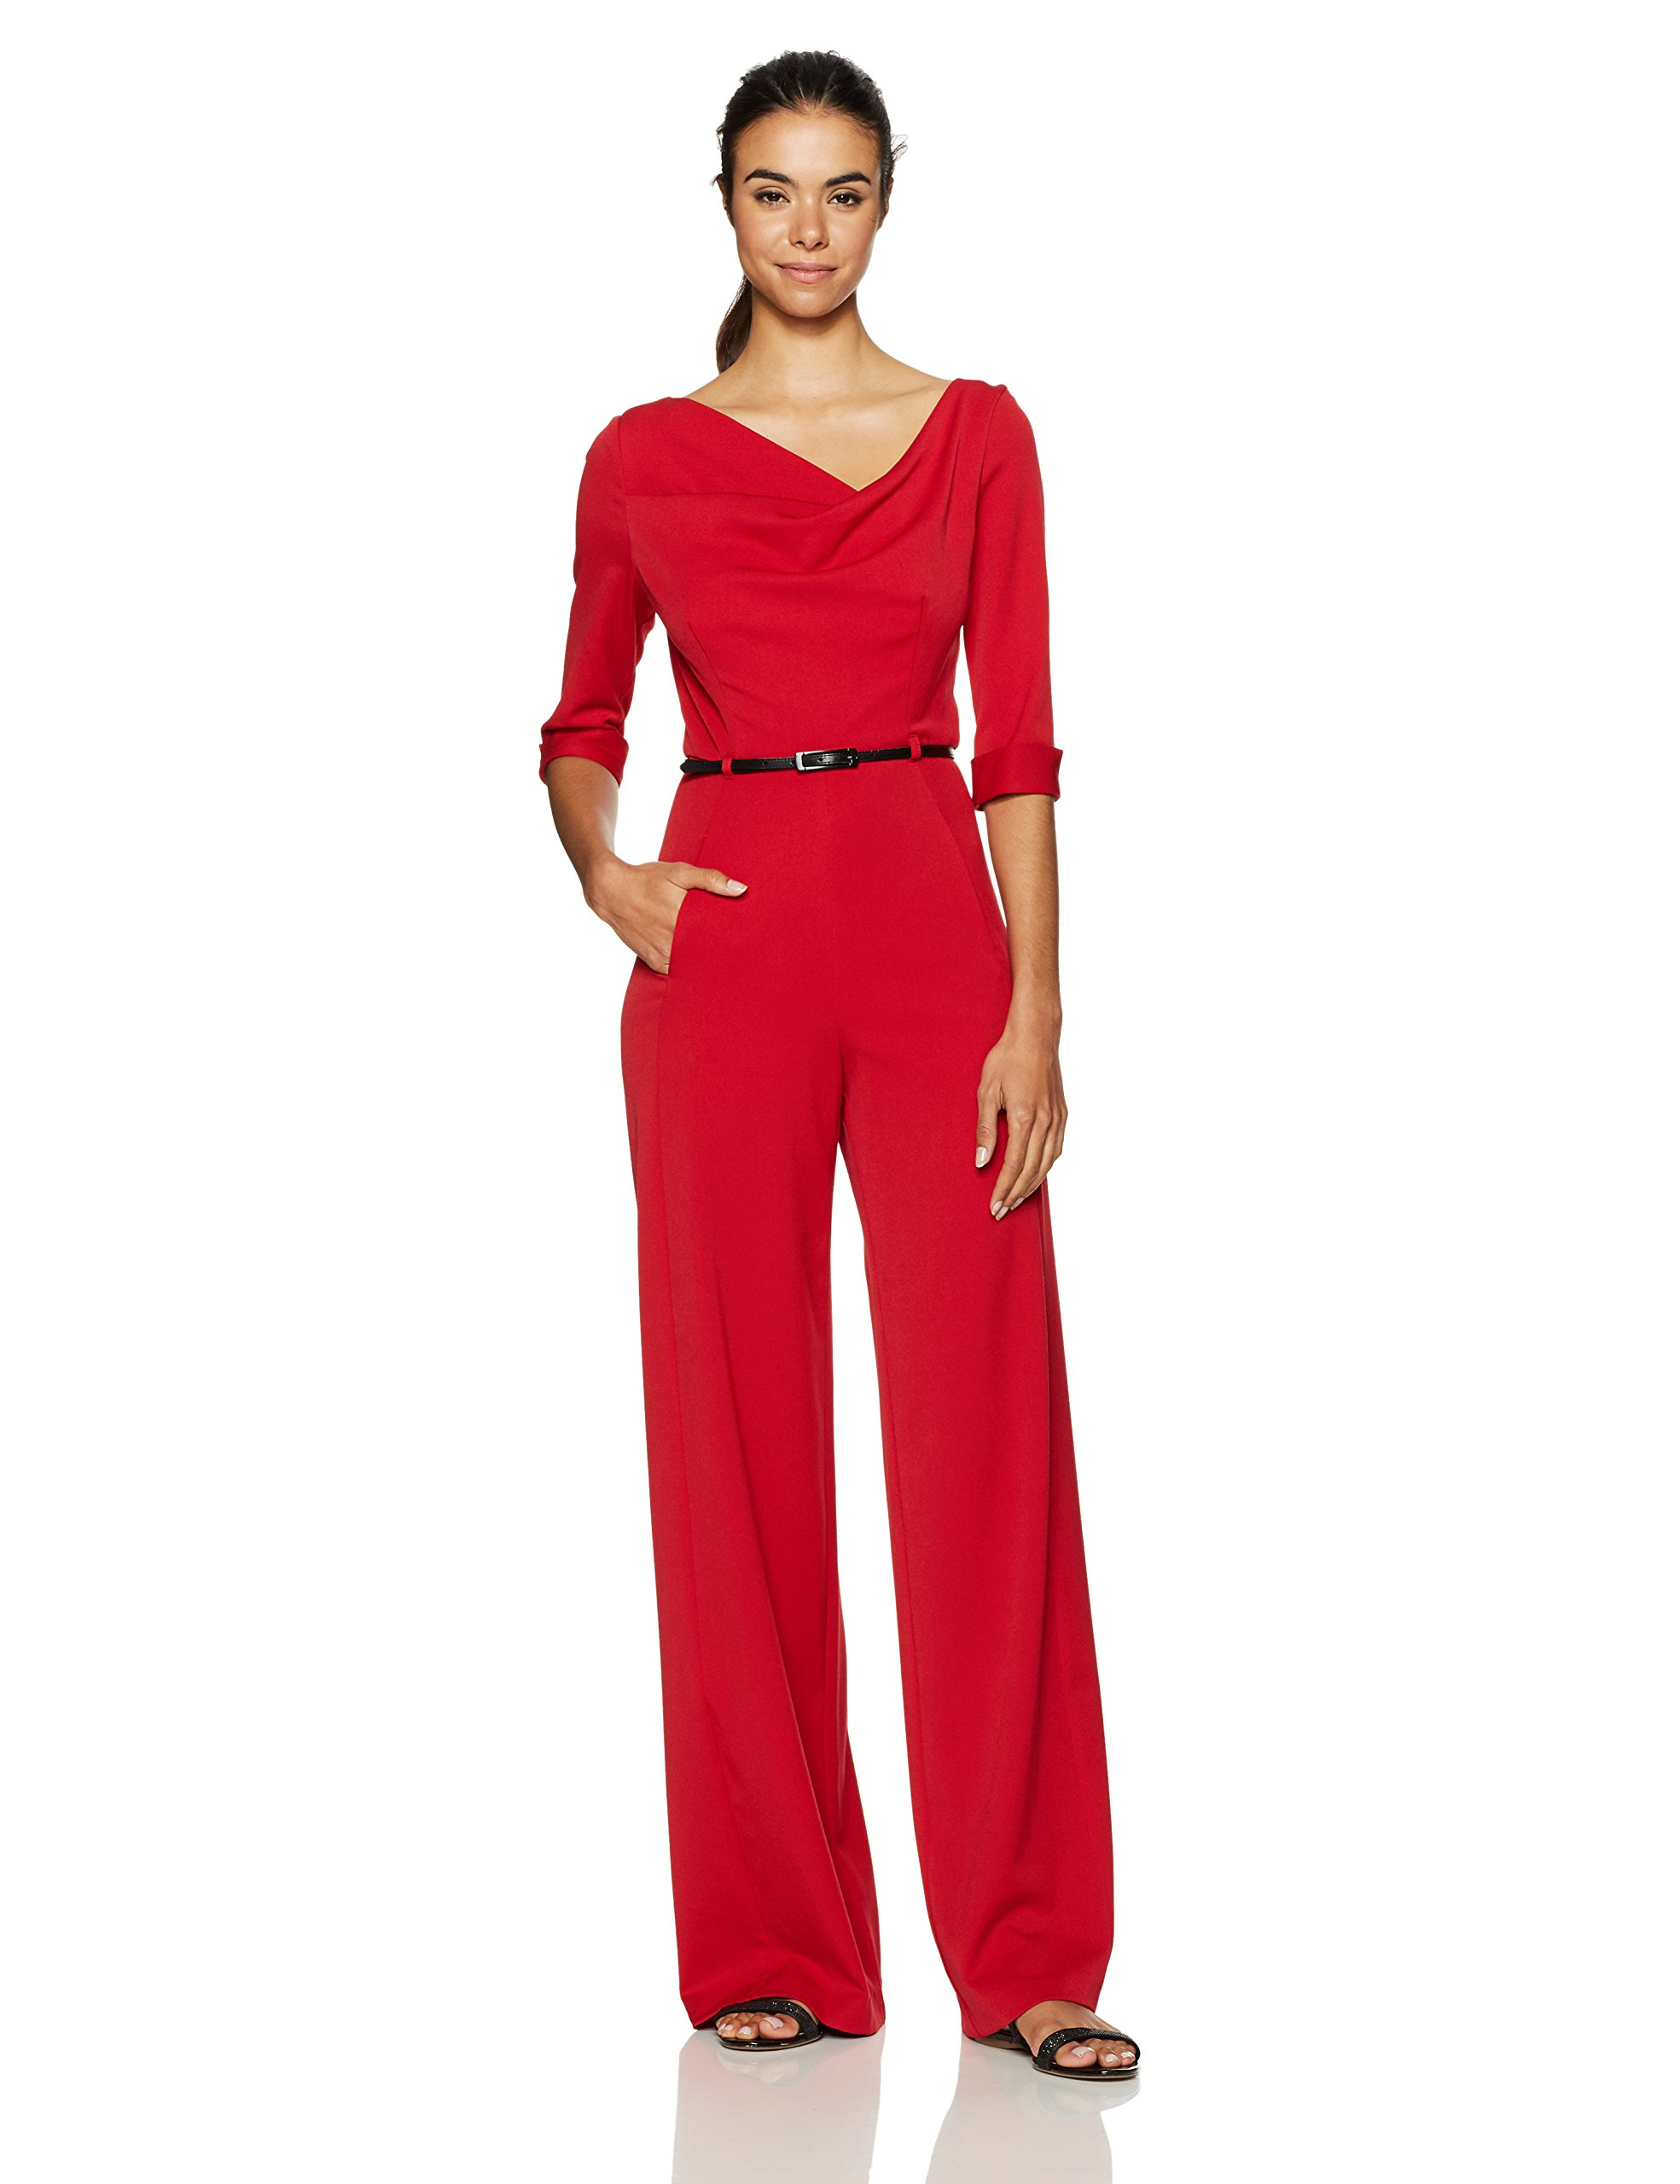 Black Halo Women's 3/4 Sleeve Jackie Jumpsuit, Red, 10